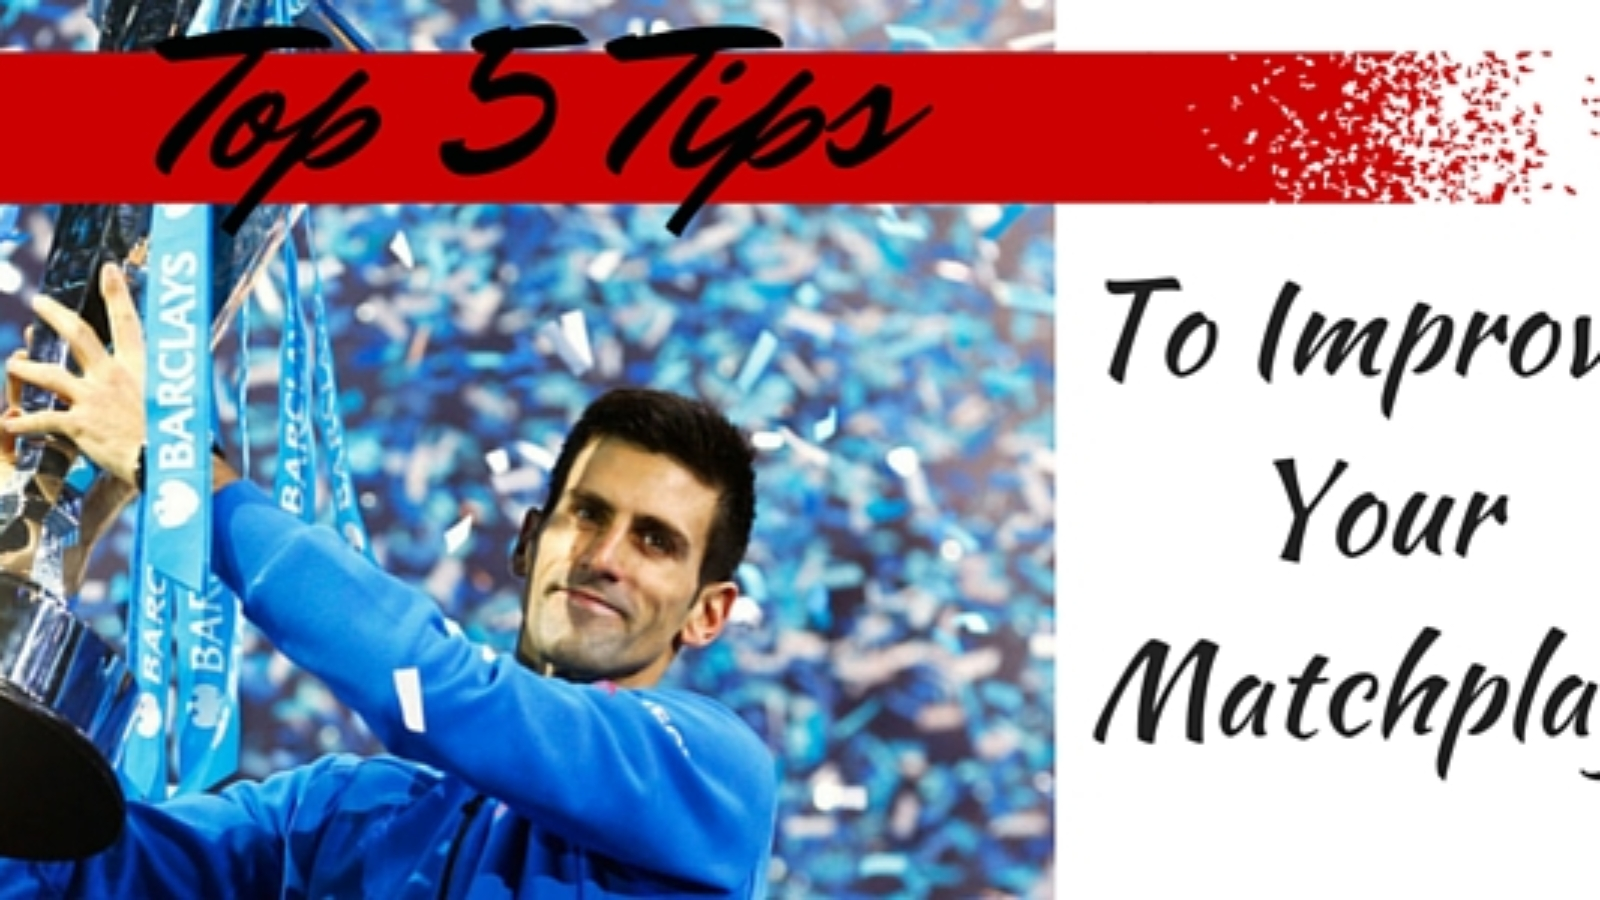 Tips to improve your Matchplay